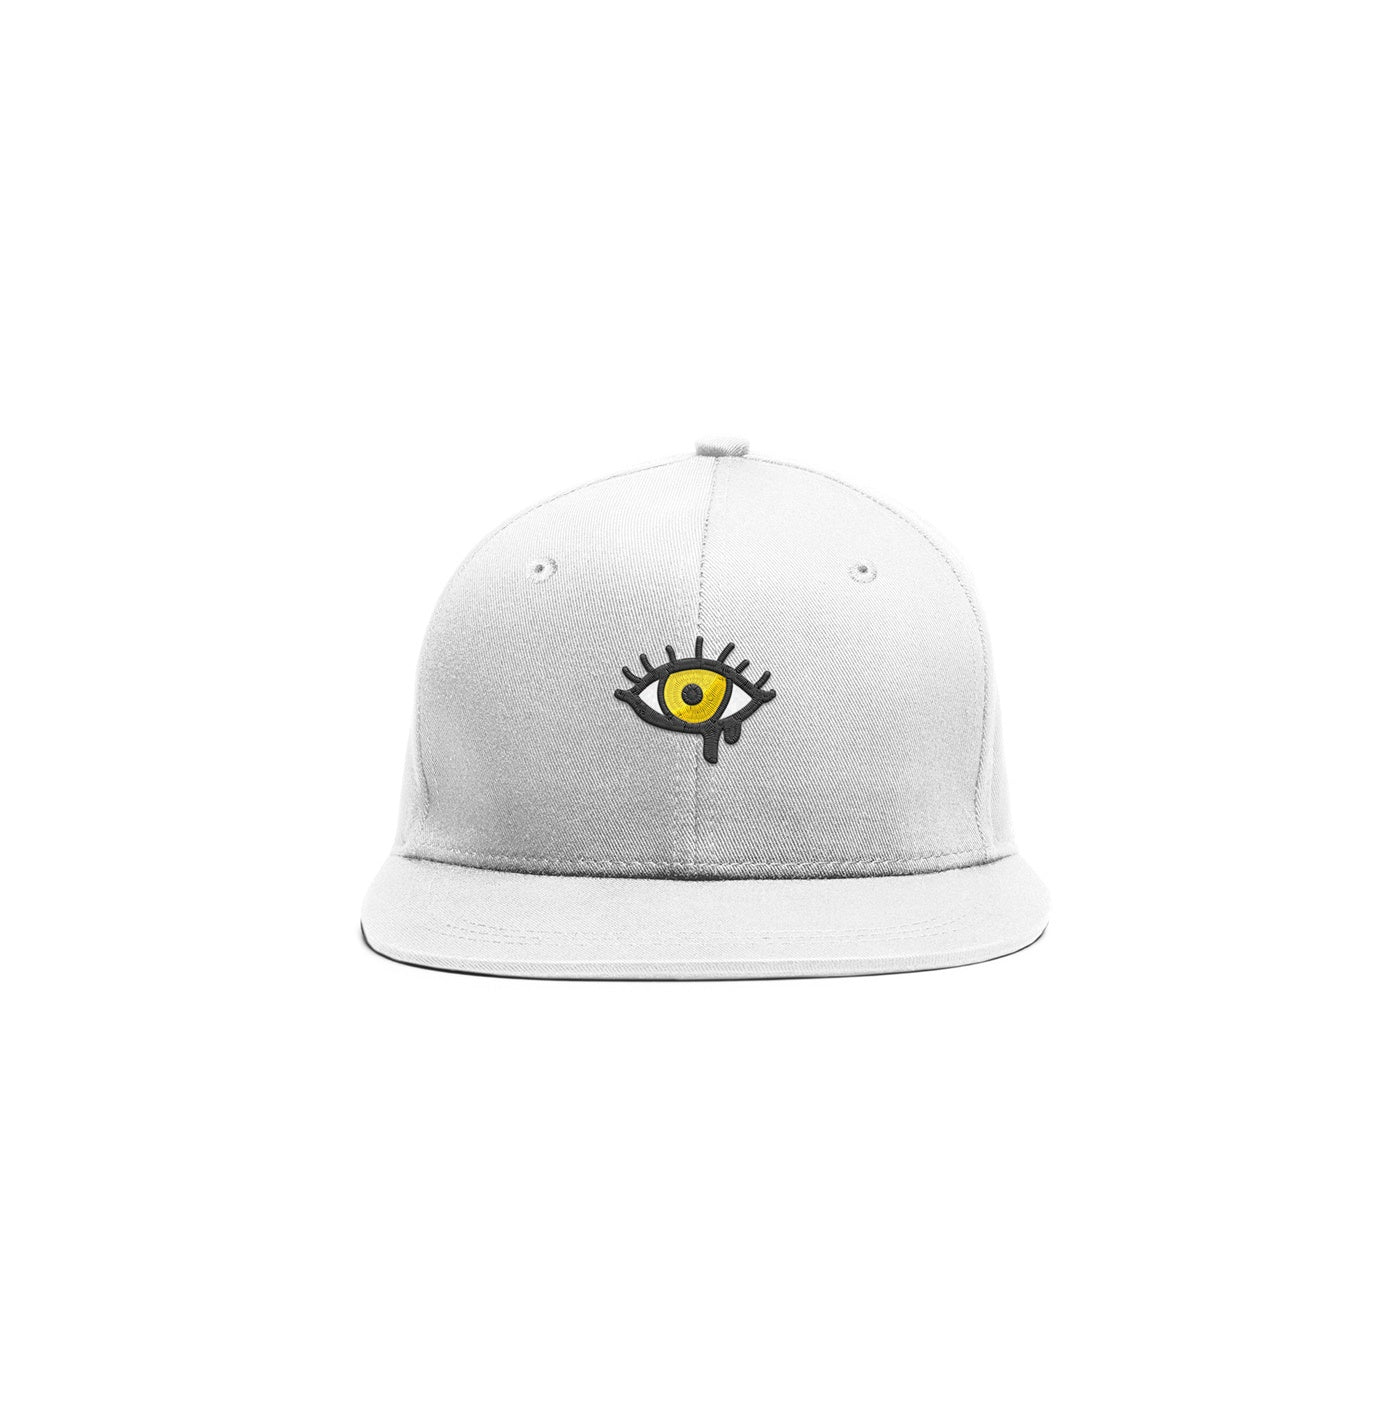 Embroidered Eye Cap